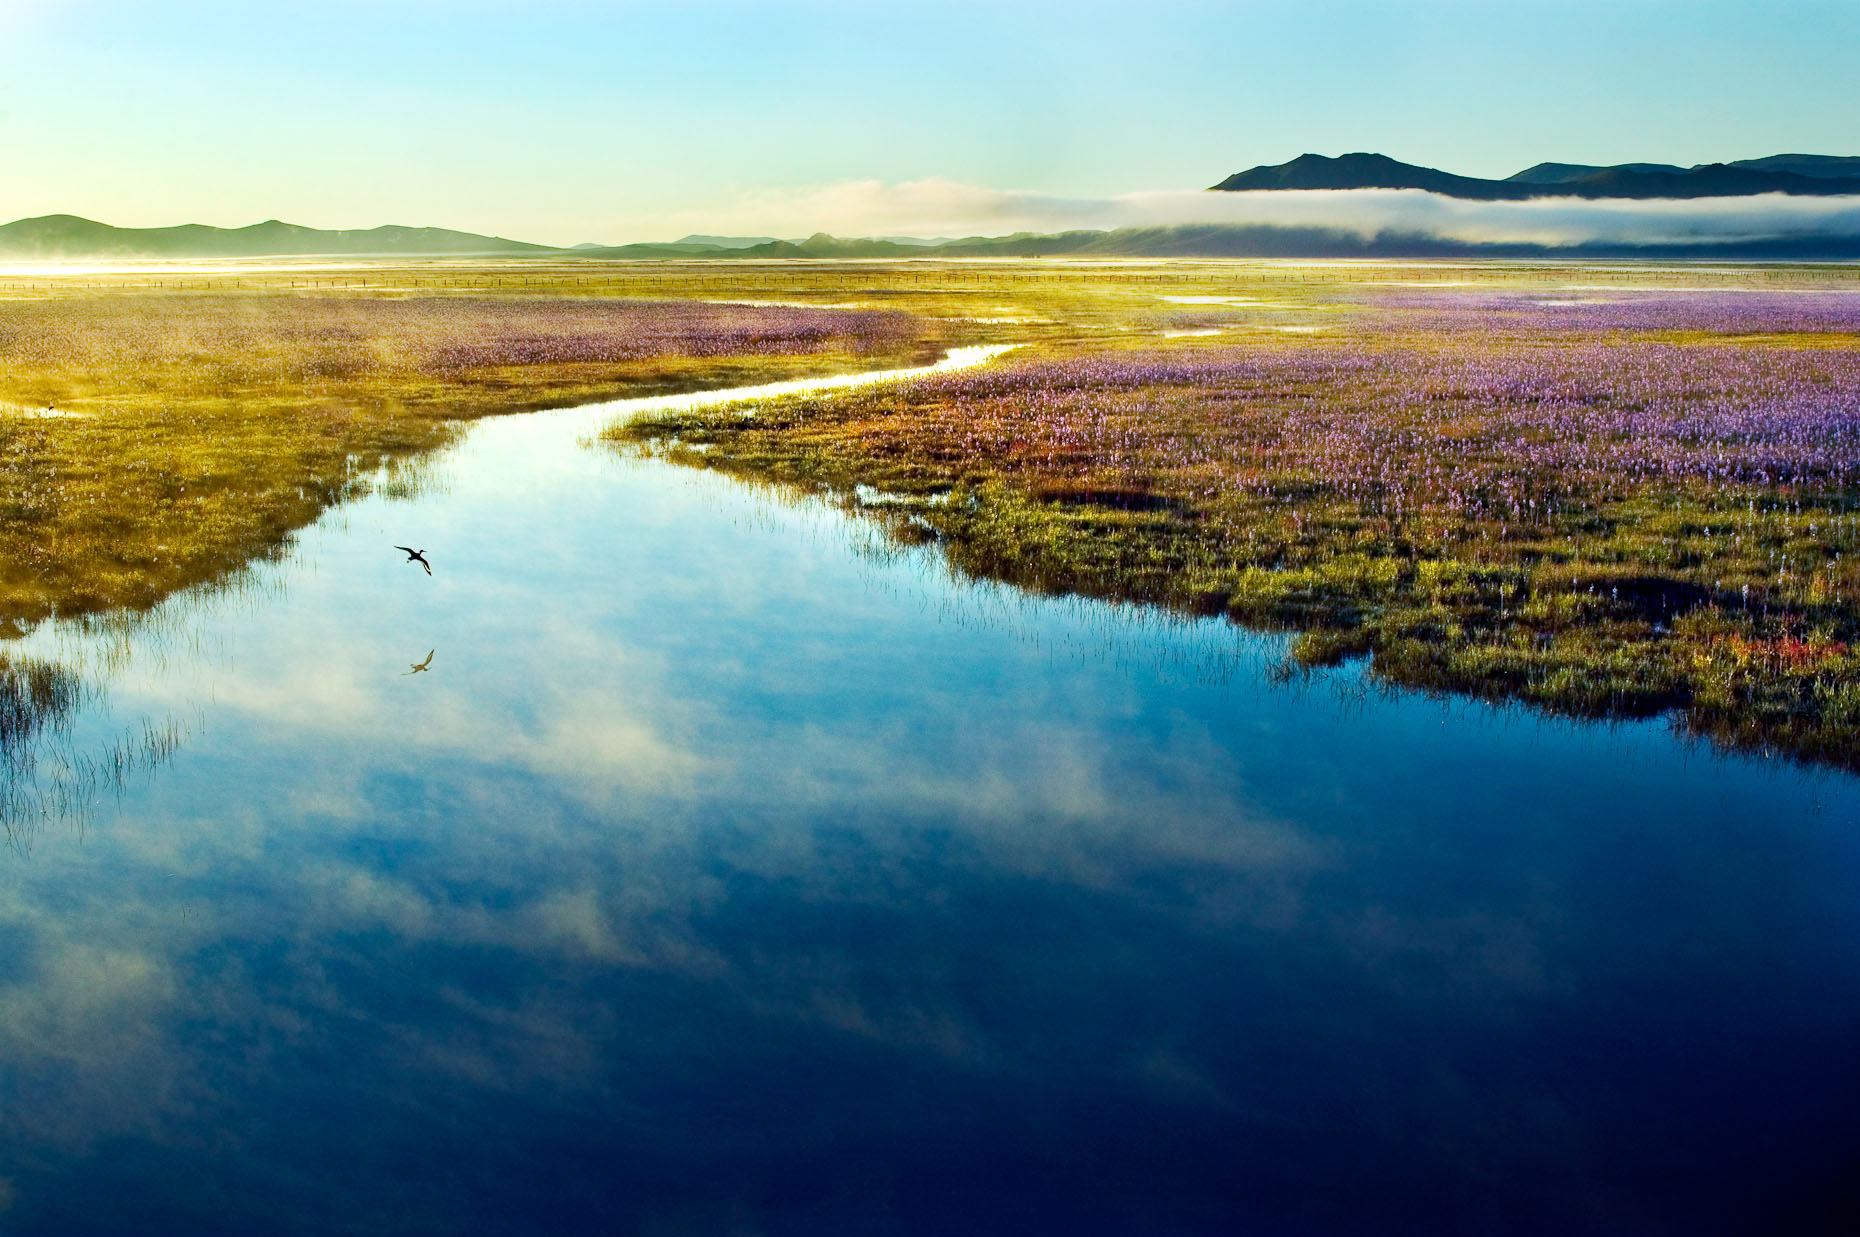 landscape of Camas Marsh, Idaho